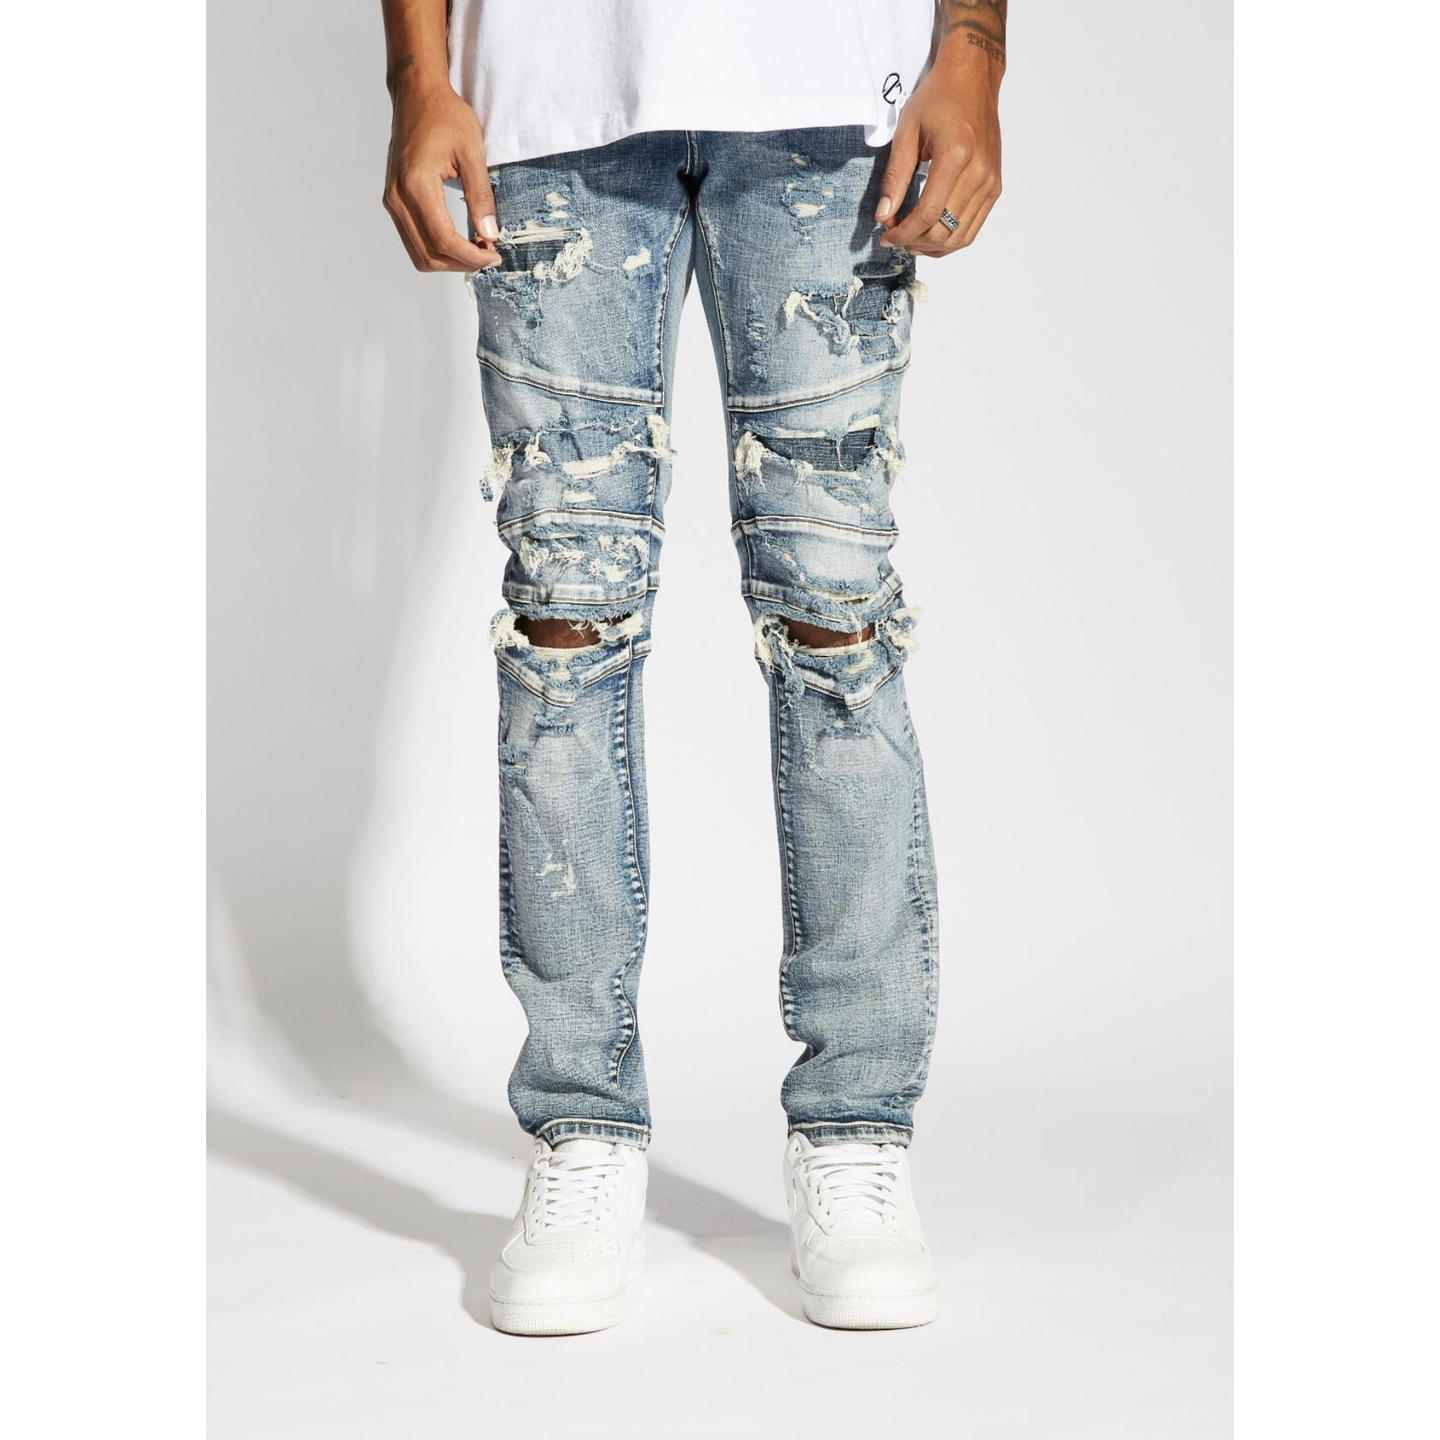 Crysp Denim Blue Montana Denim Jeans w/Tears (CRYSU219-113)